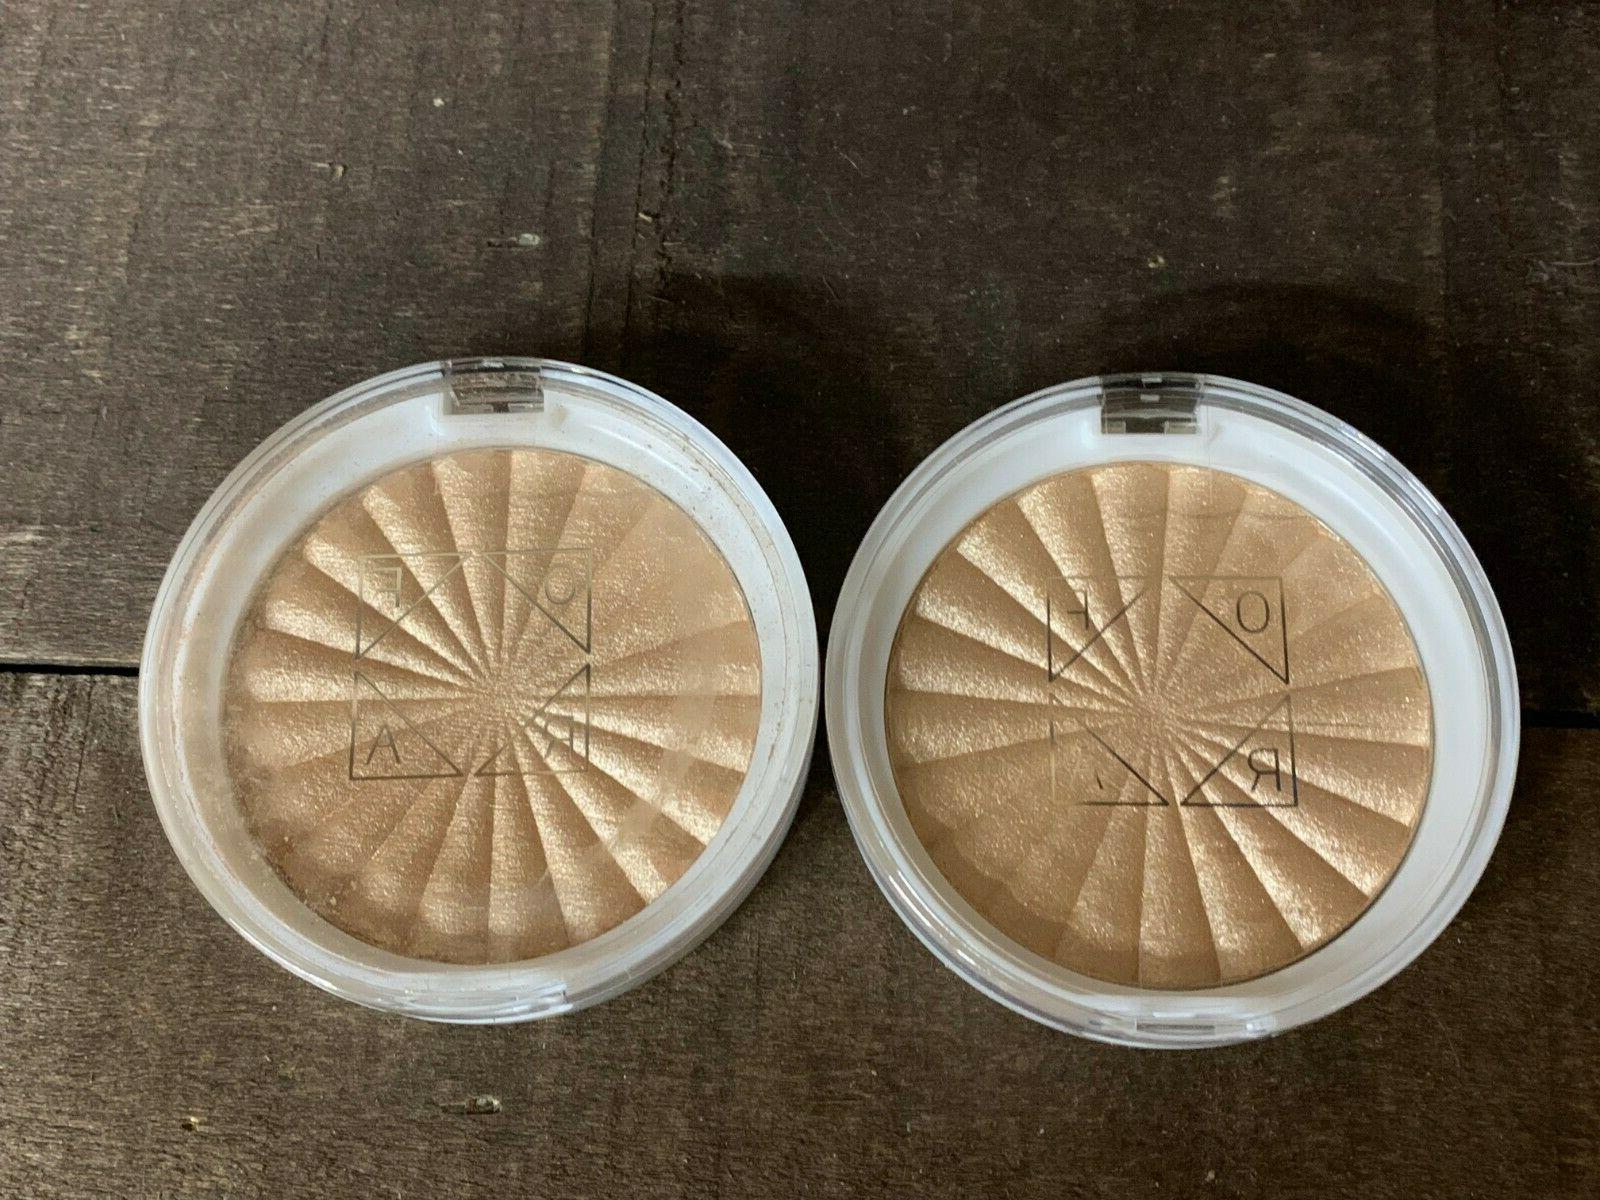 set of 2 highlighter rodeo drive 35oz